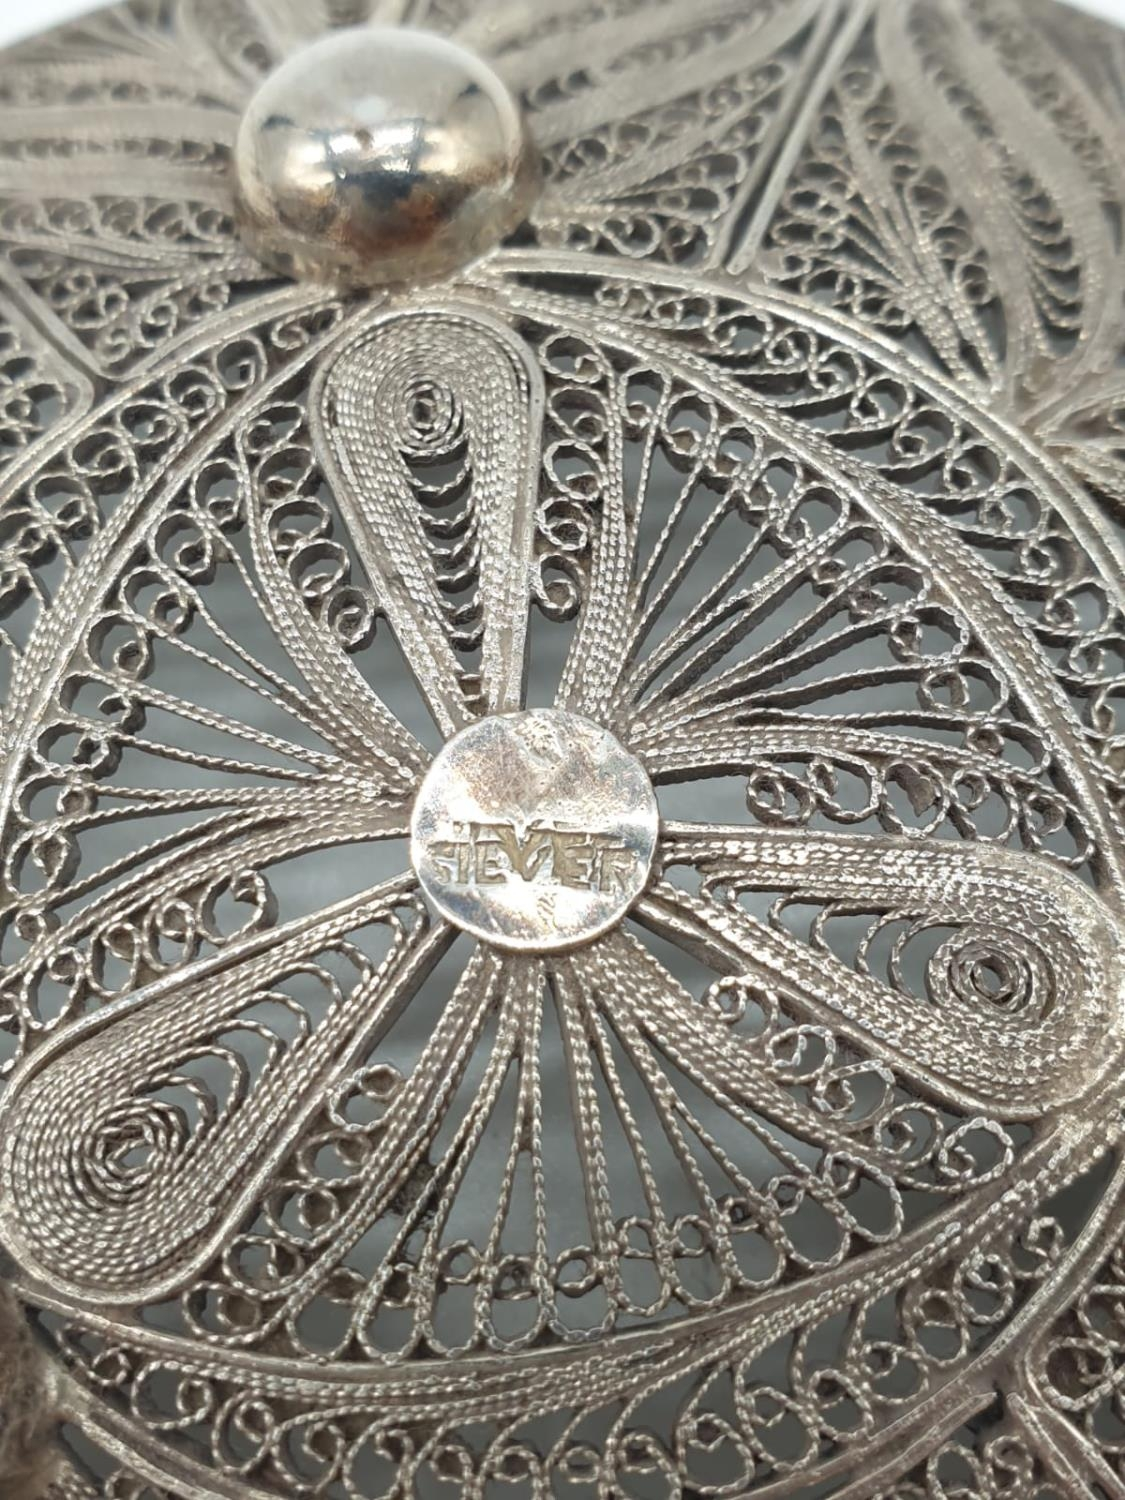 Silver filigree dish. 61.3g in weight. 10cm diameter. - Image 4 of 4